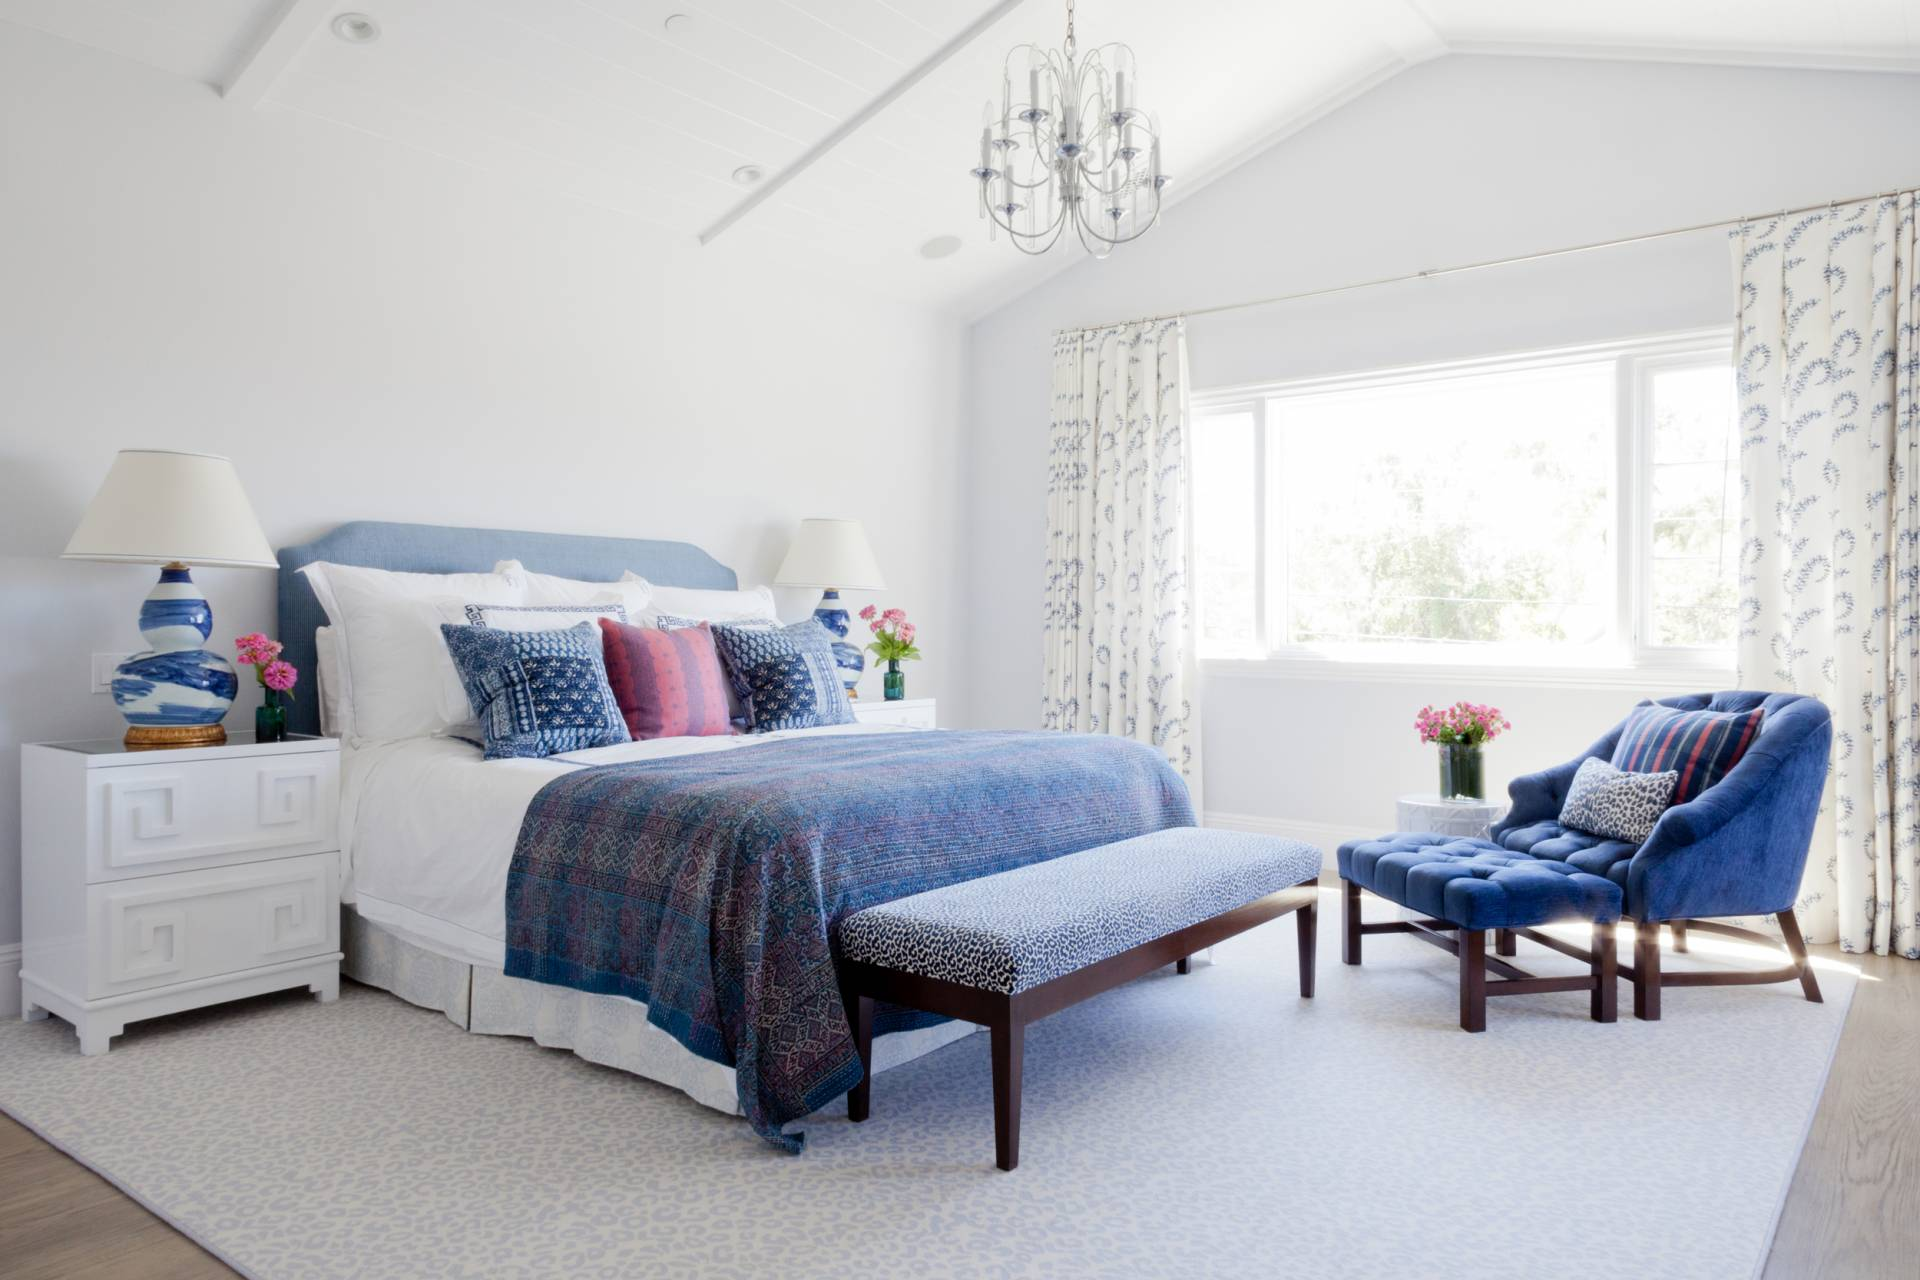 Custom white and blue bedding and drapery